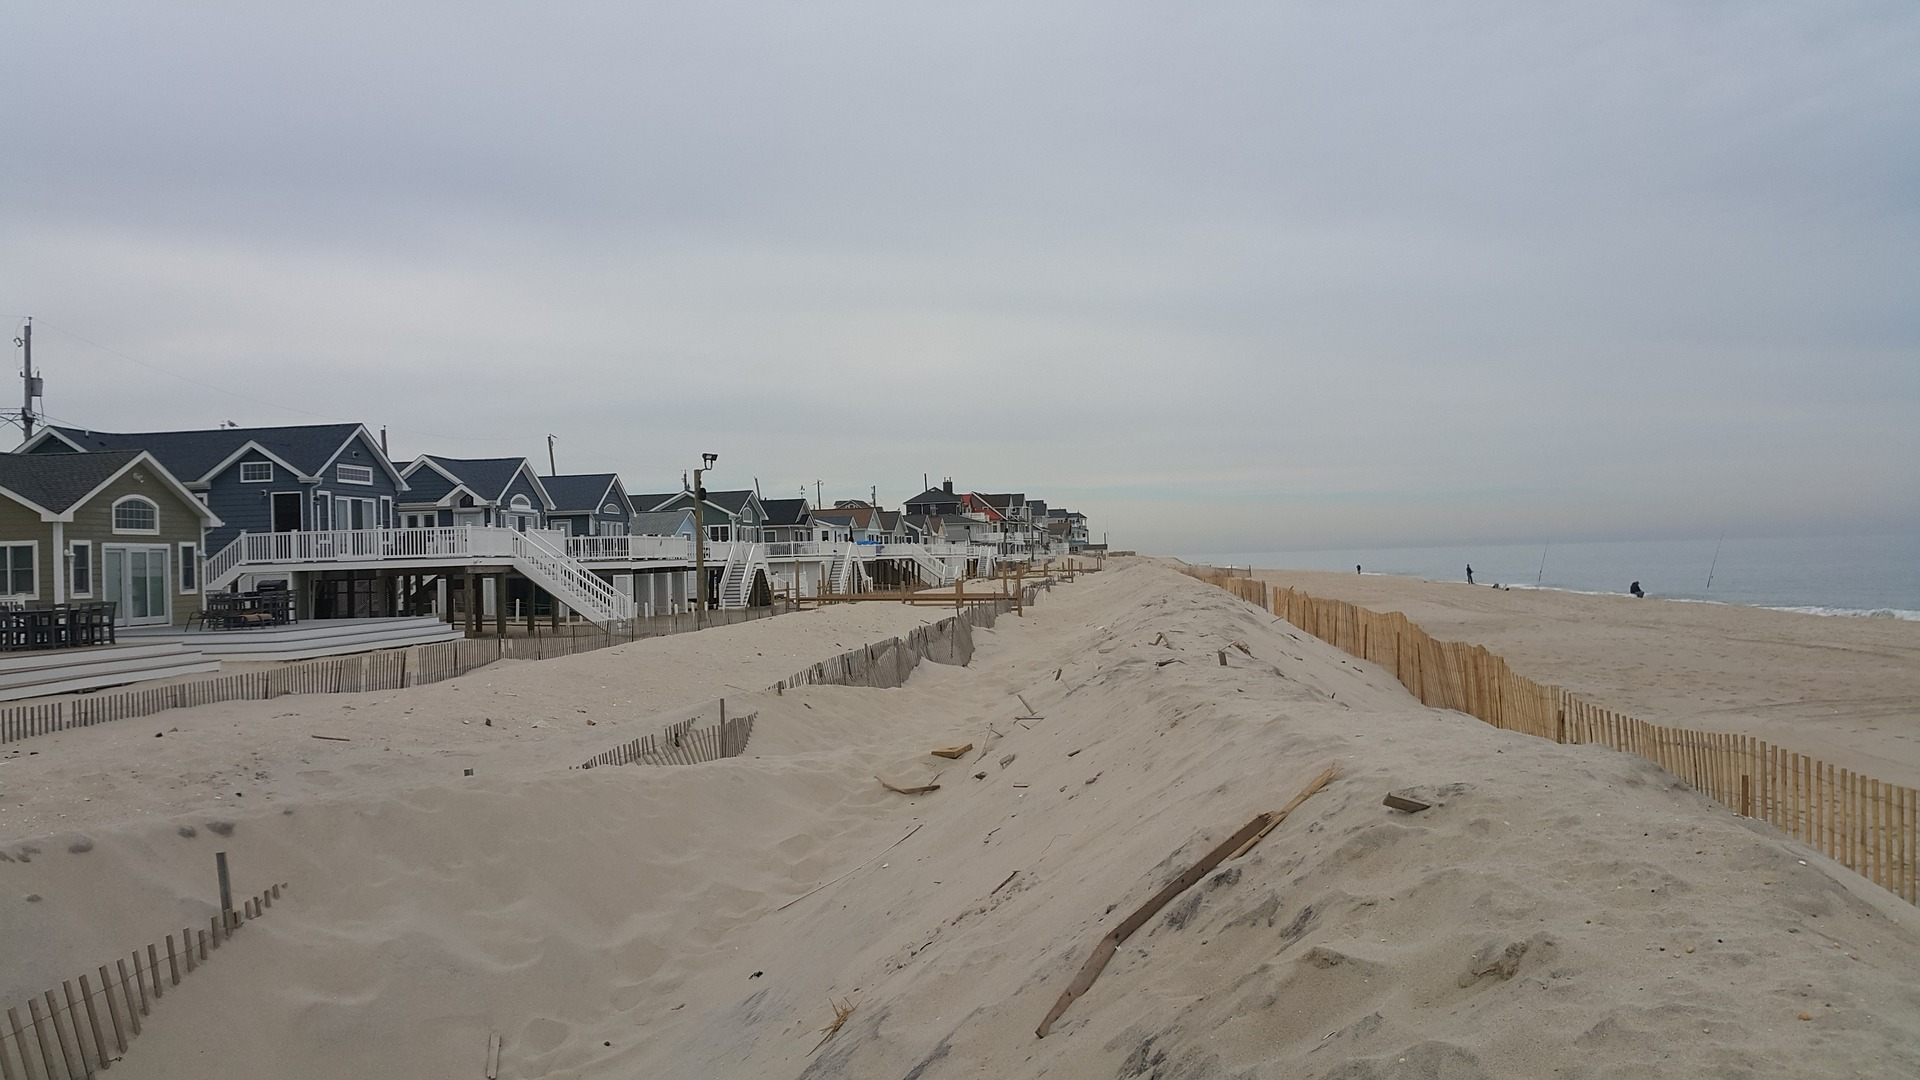 Jersey Shore, New Jersey